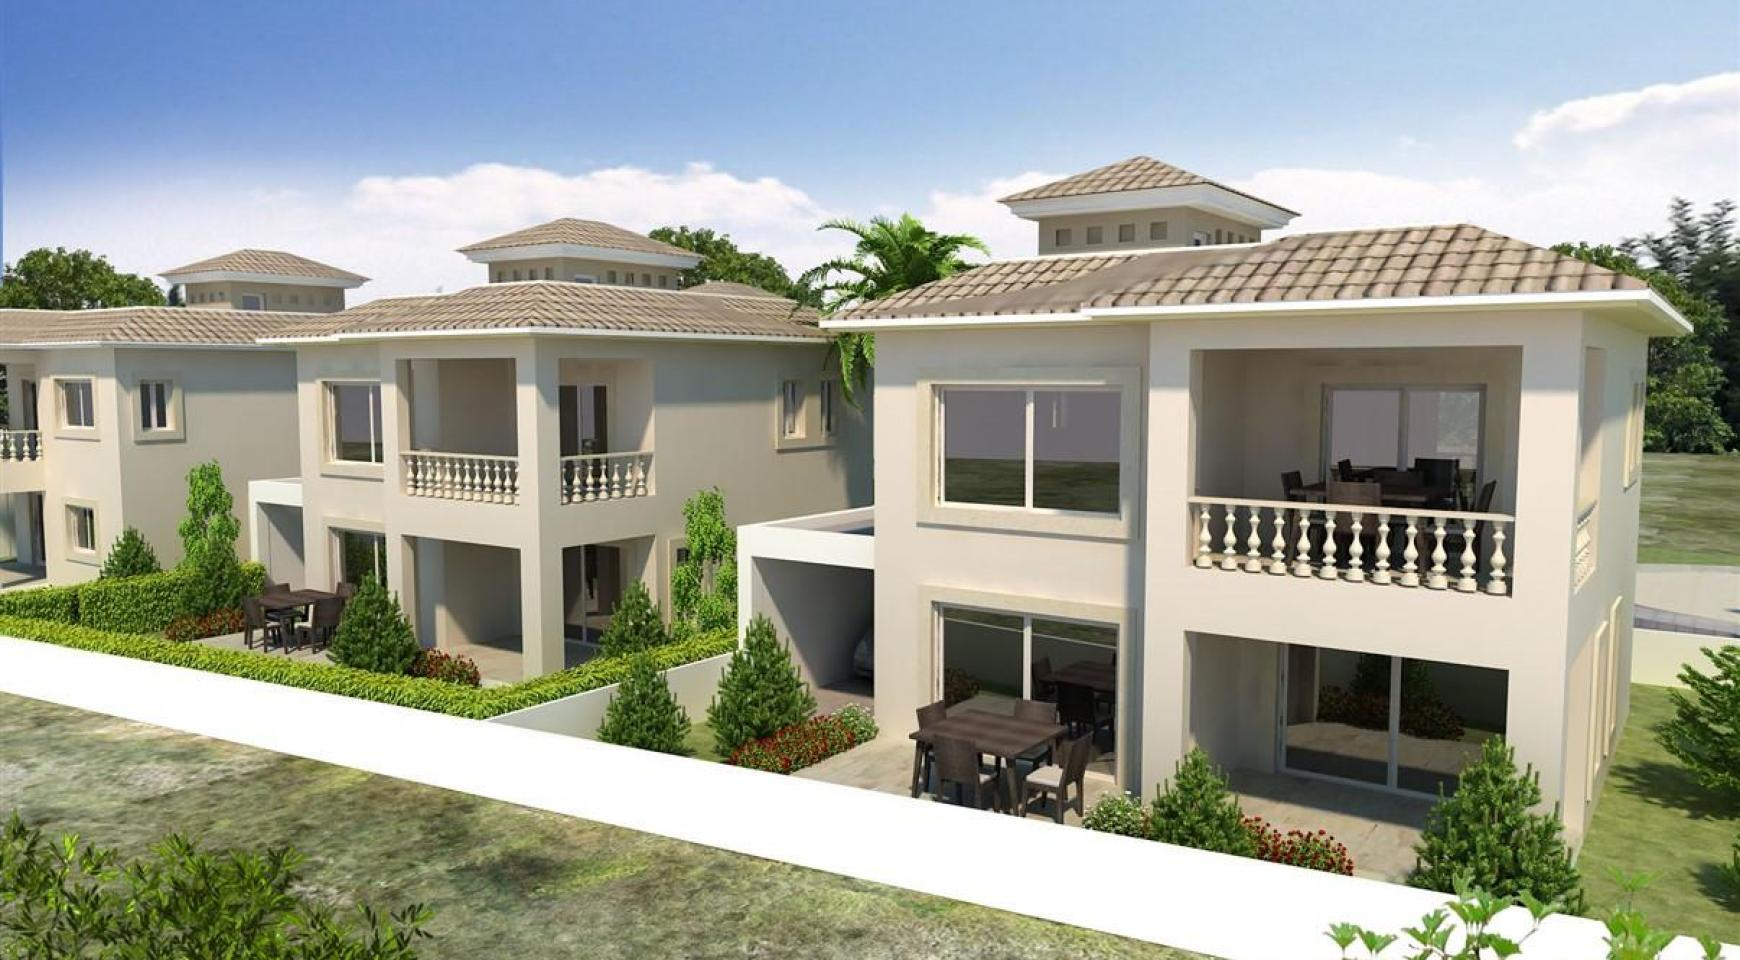 3 Bedroom Villa in a New Project - 19